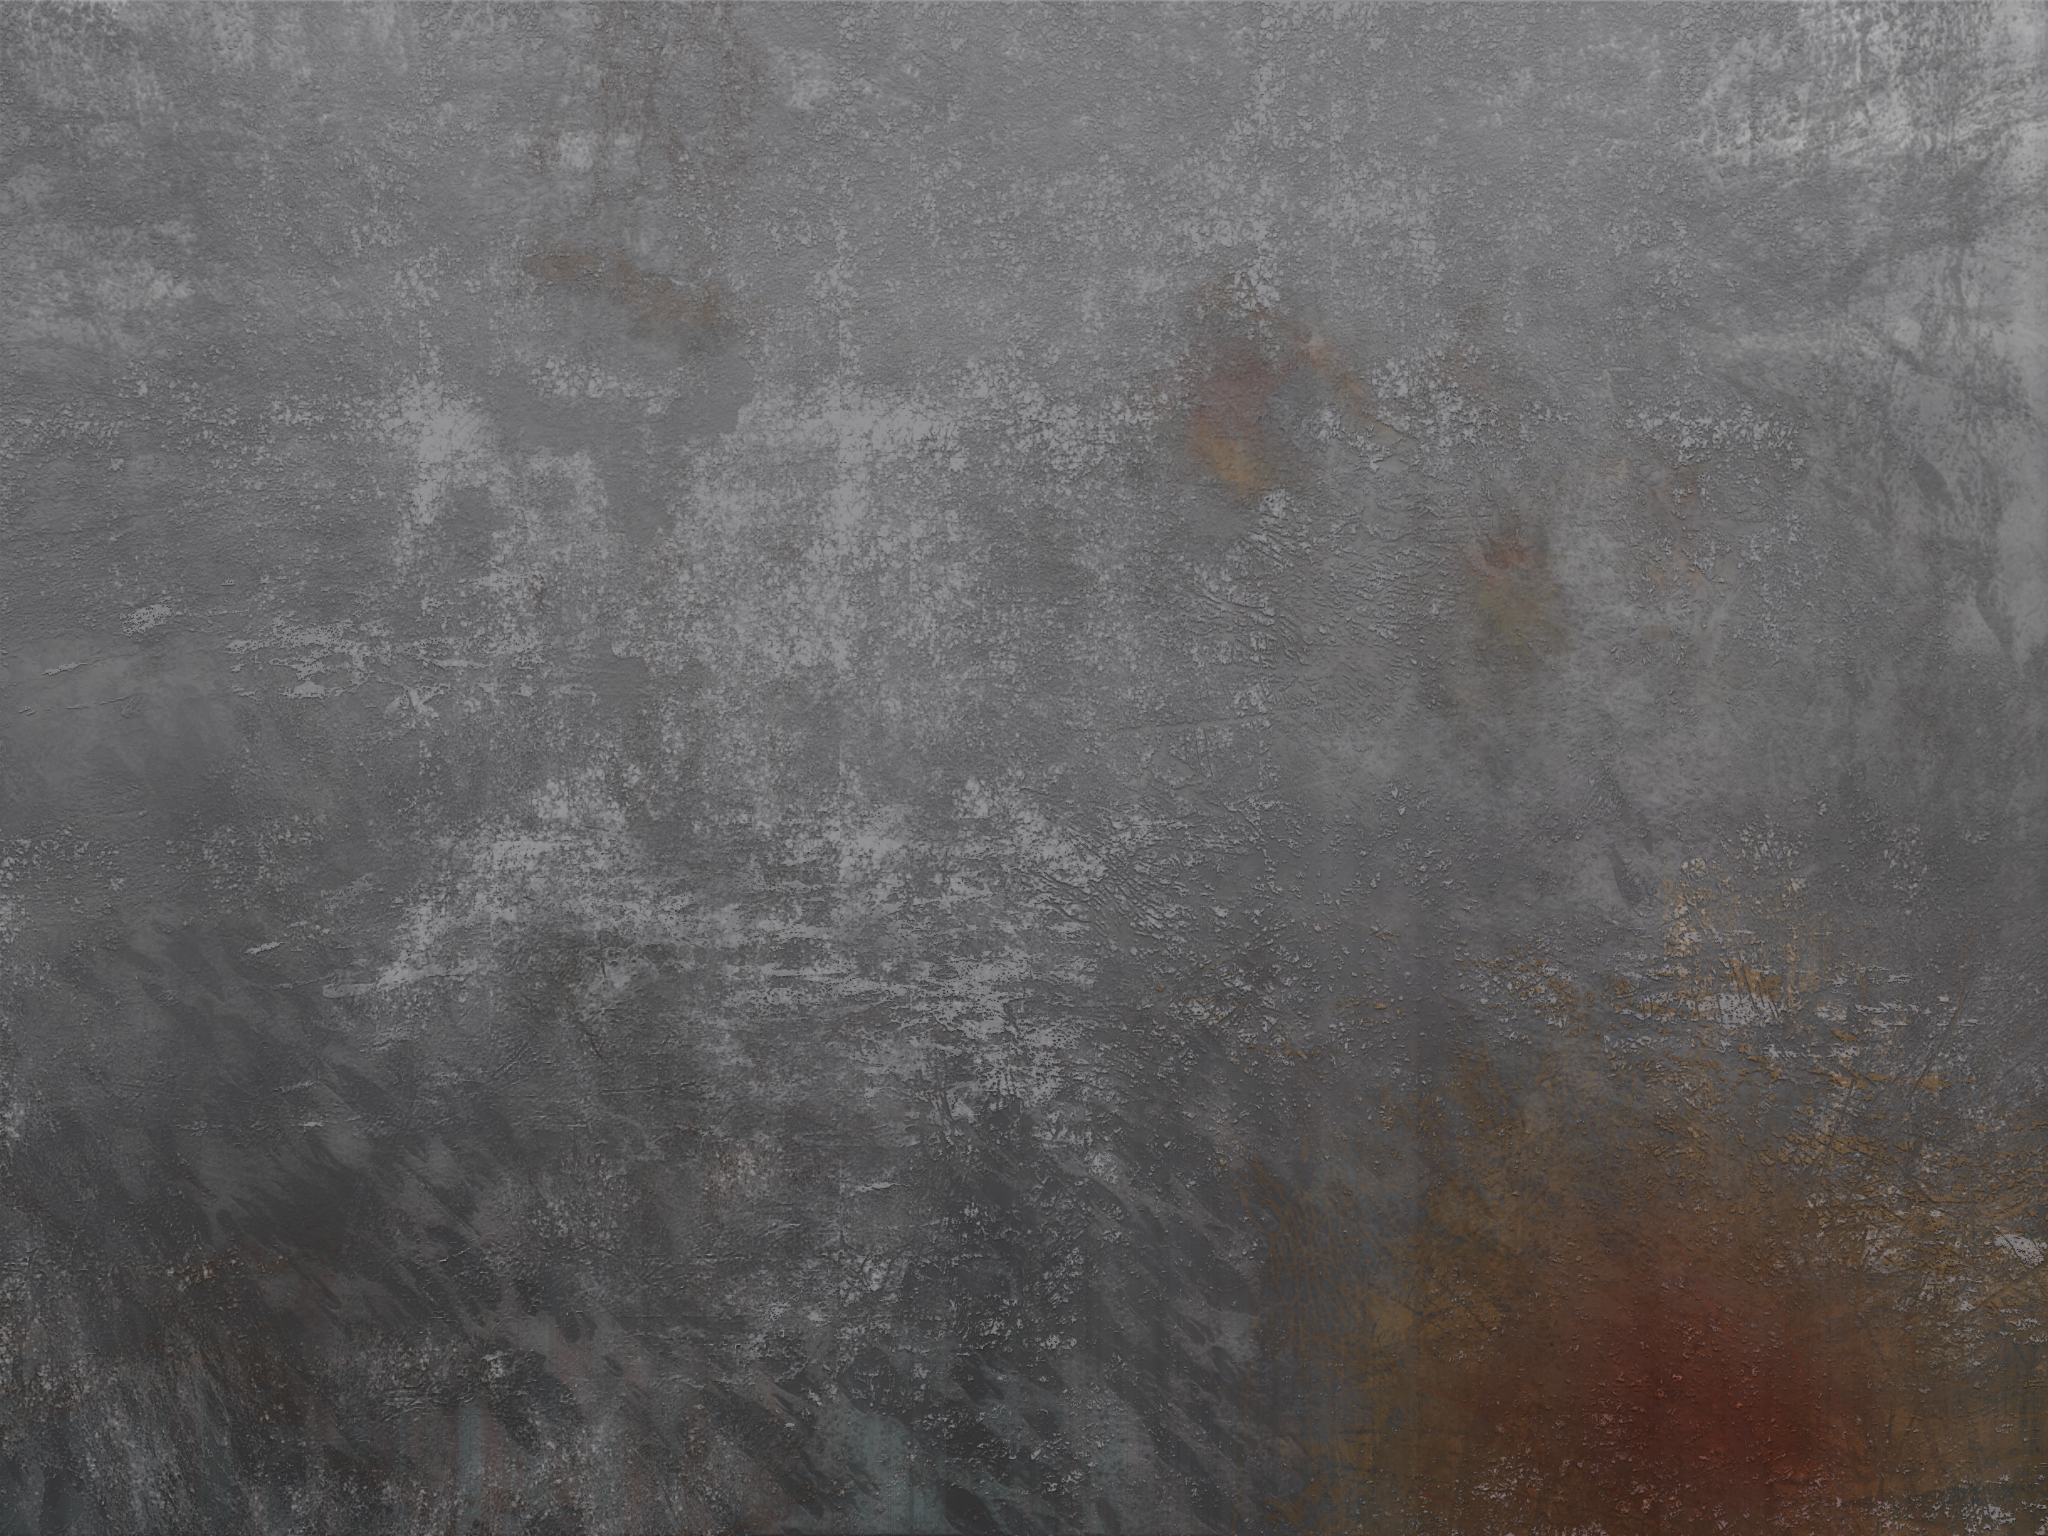 Metal Texture By Markwester On Deviantart